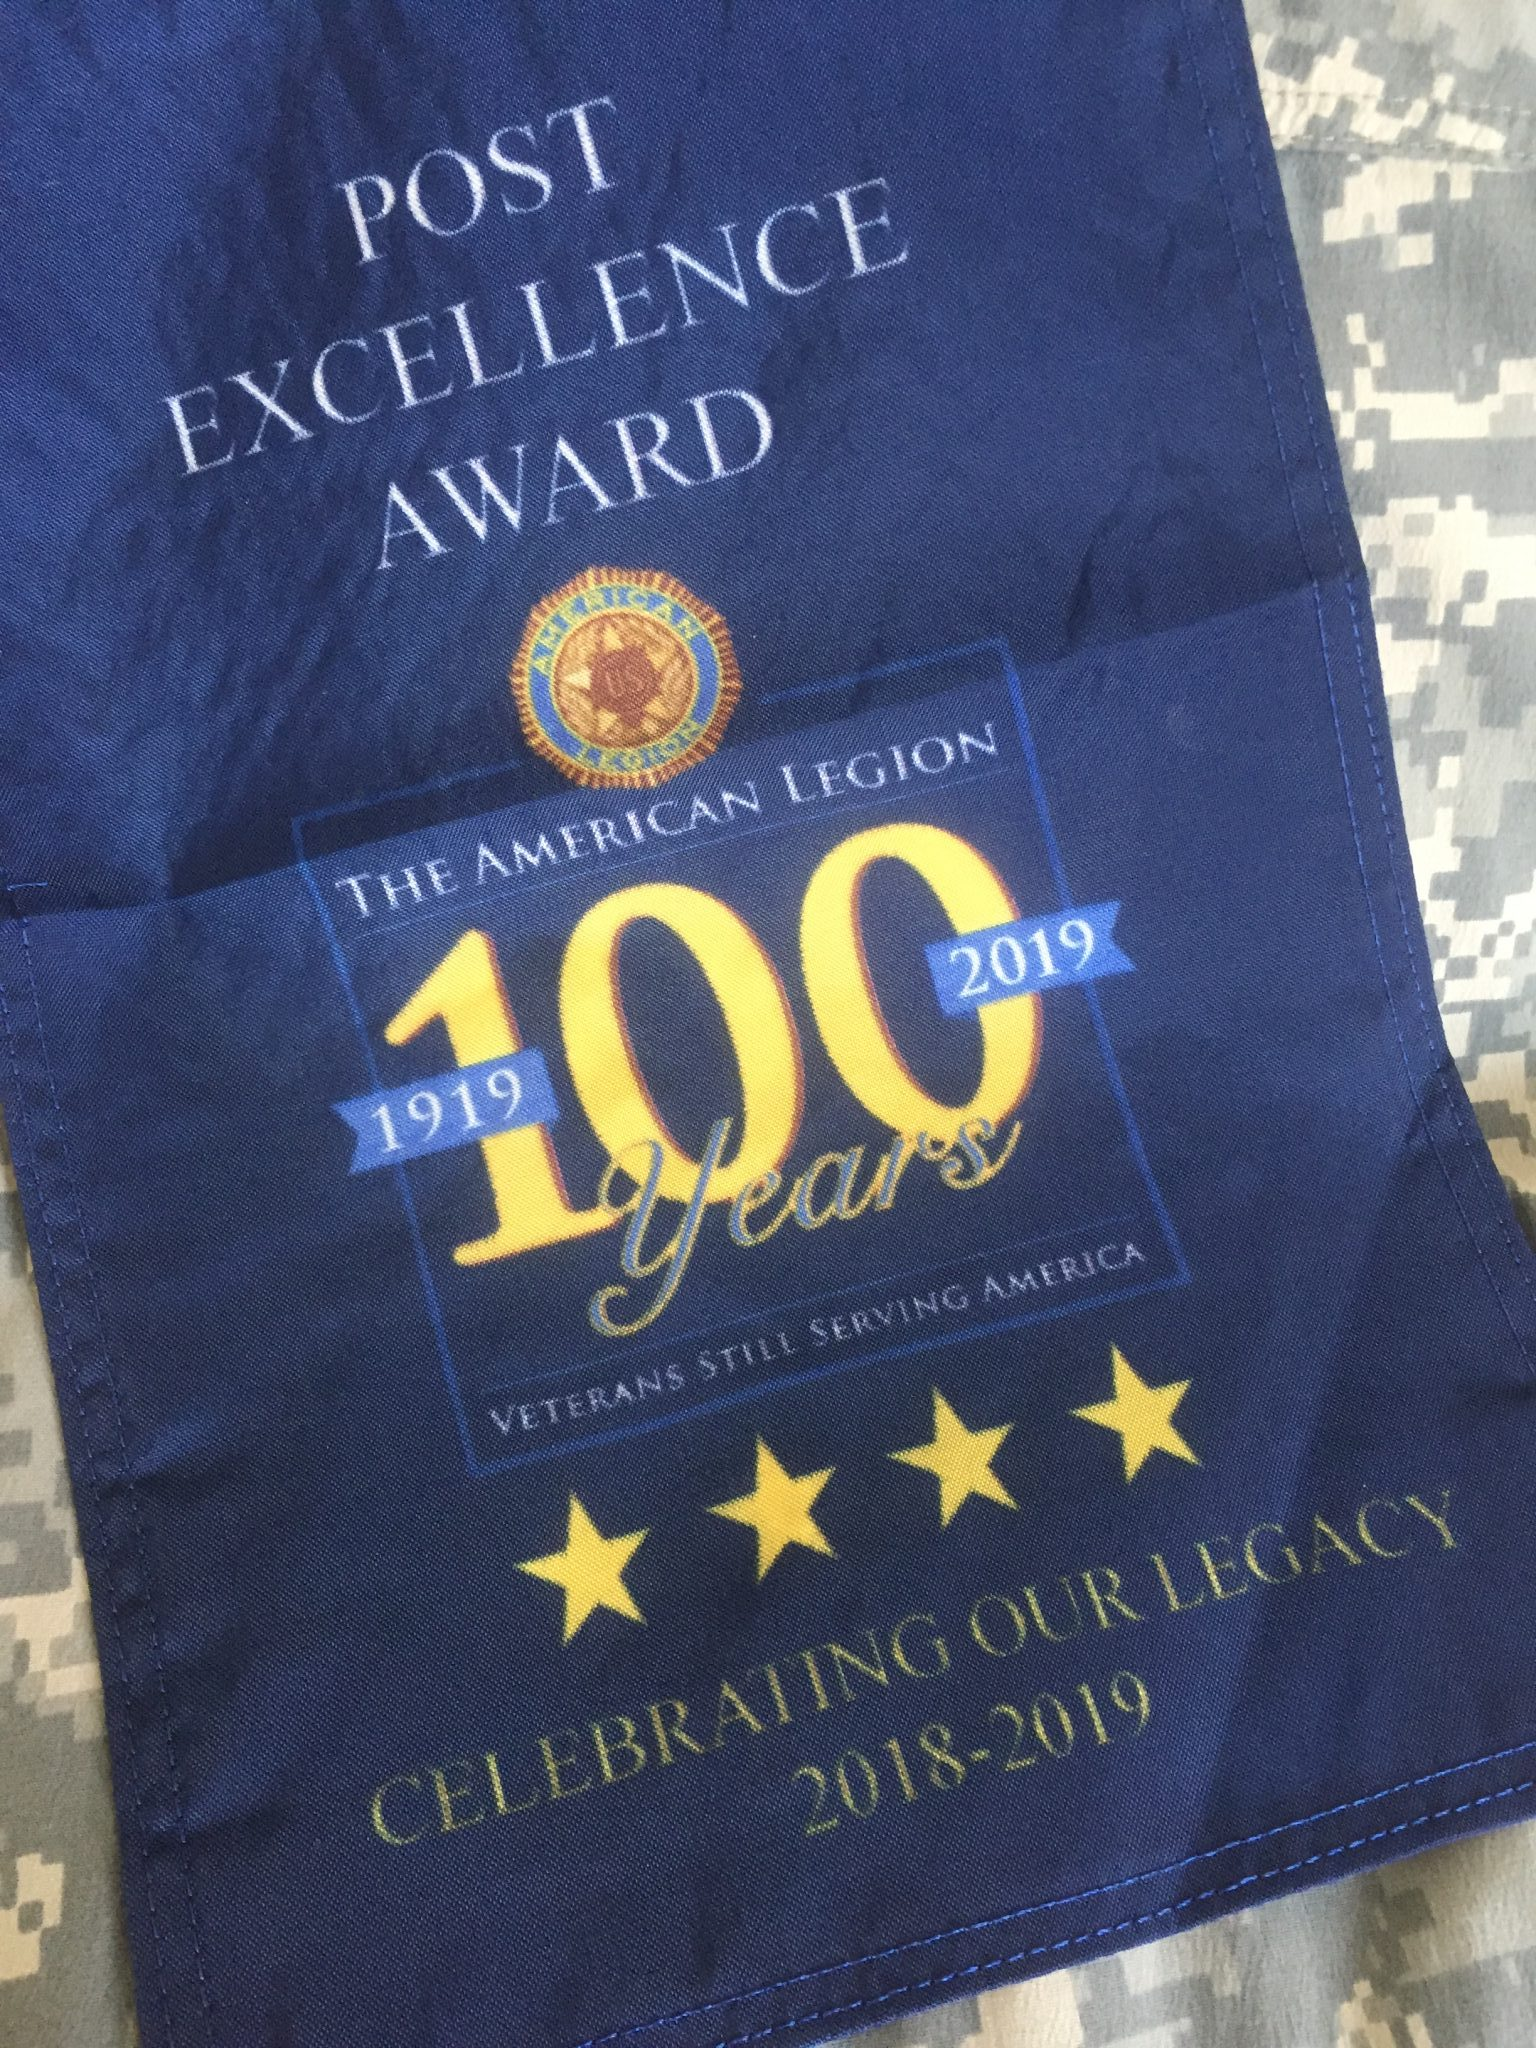 American Legion Post Excellence Award